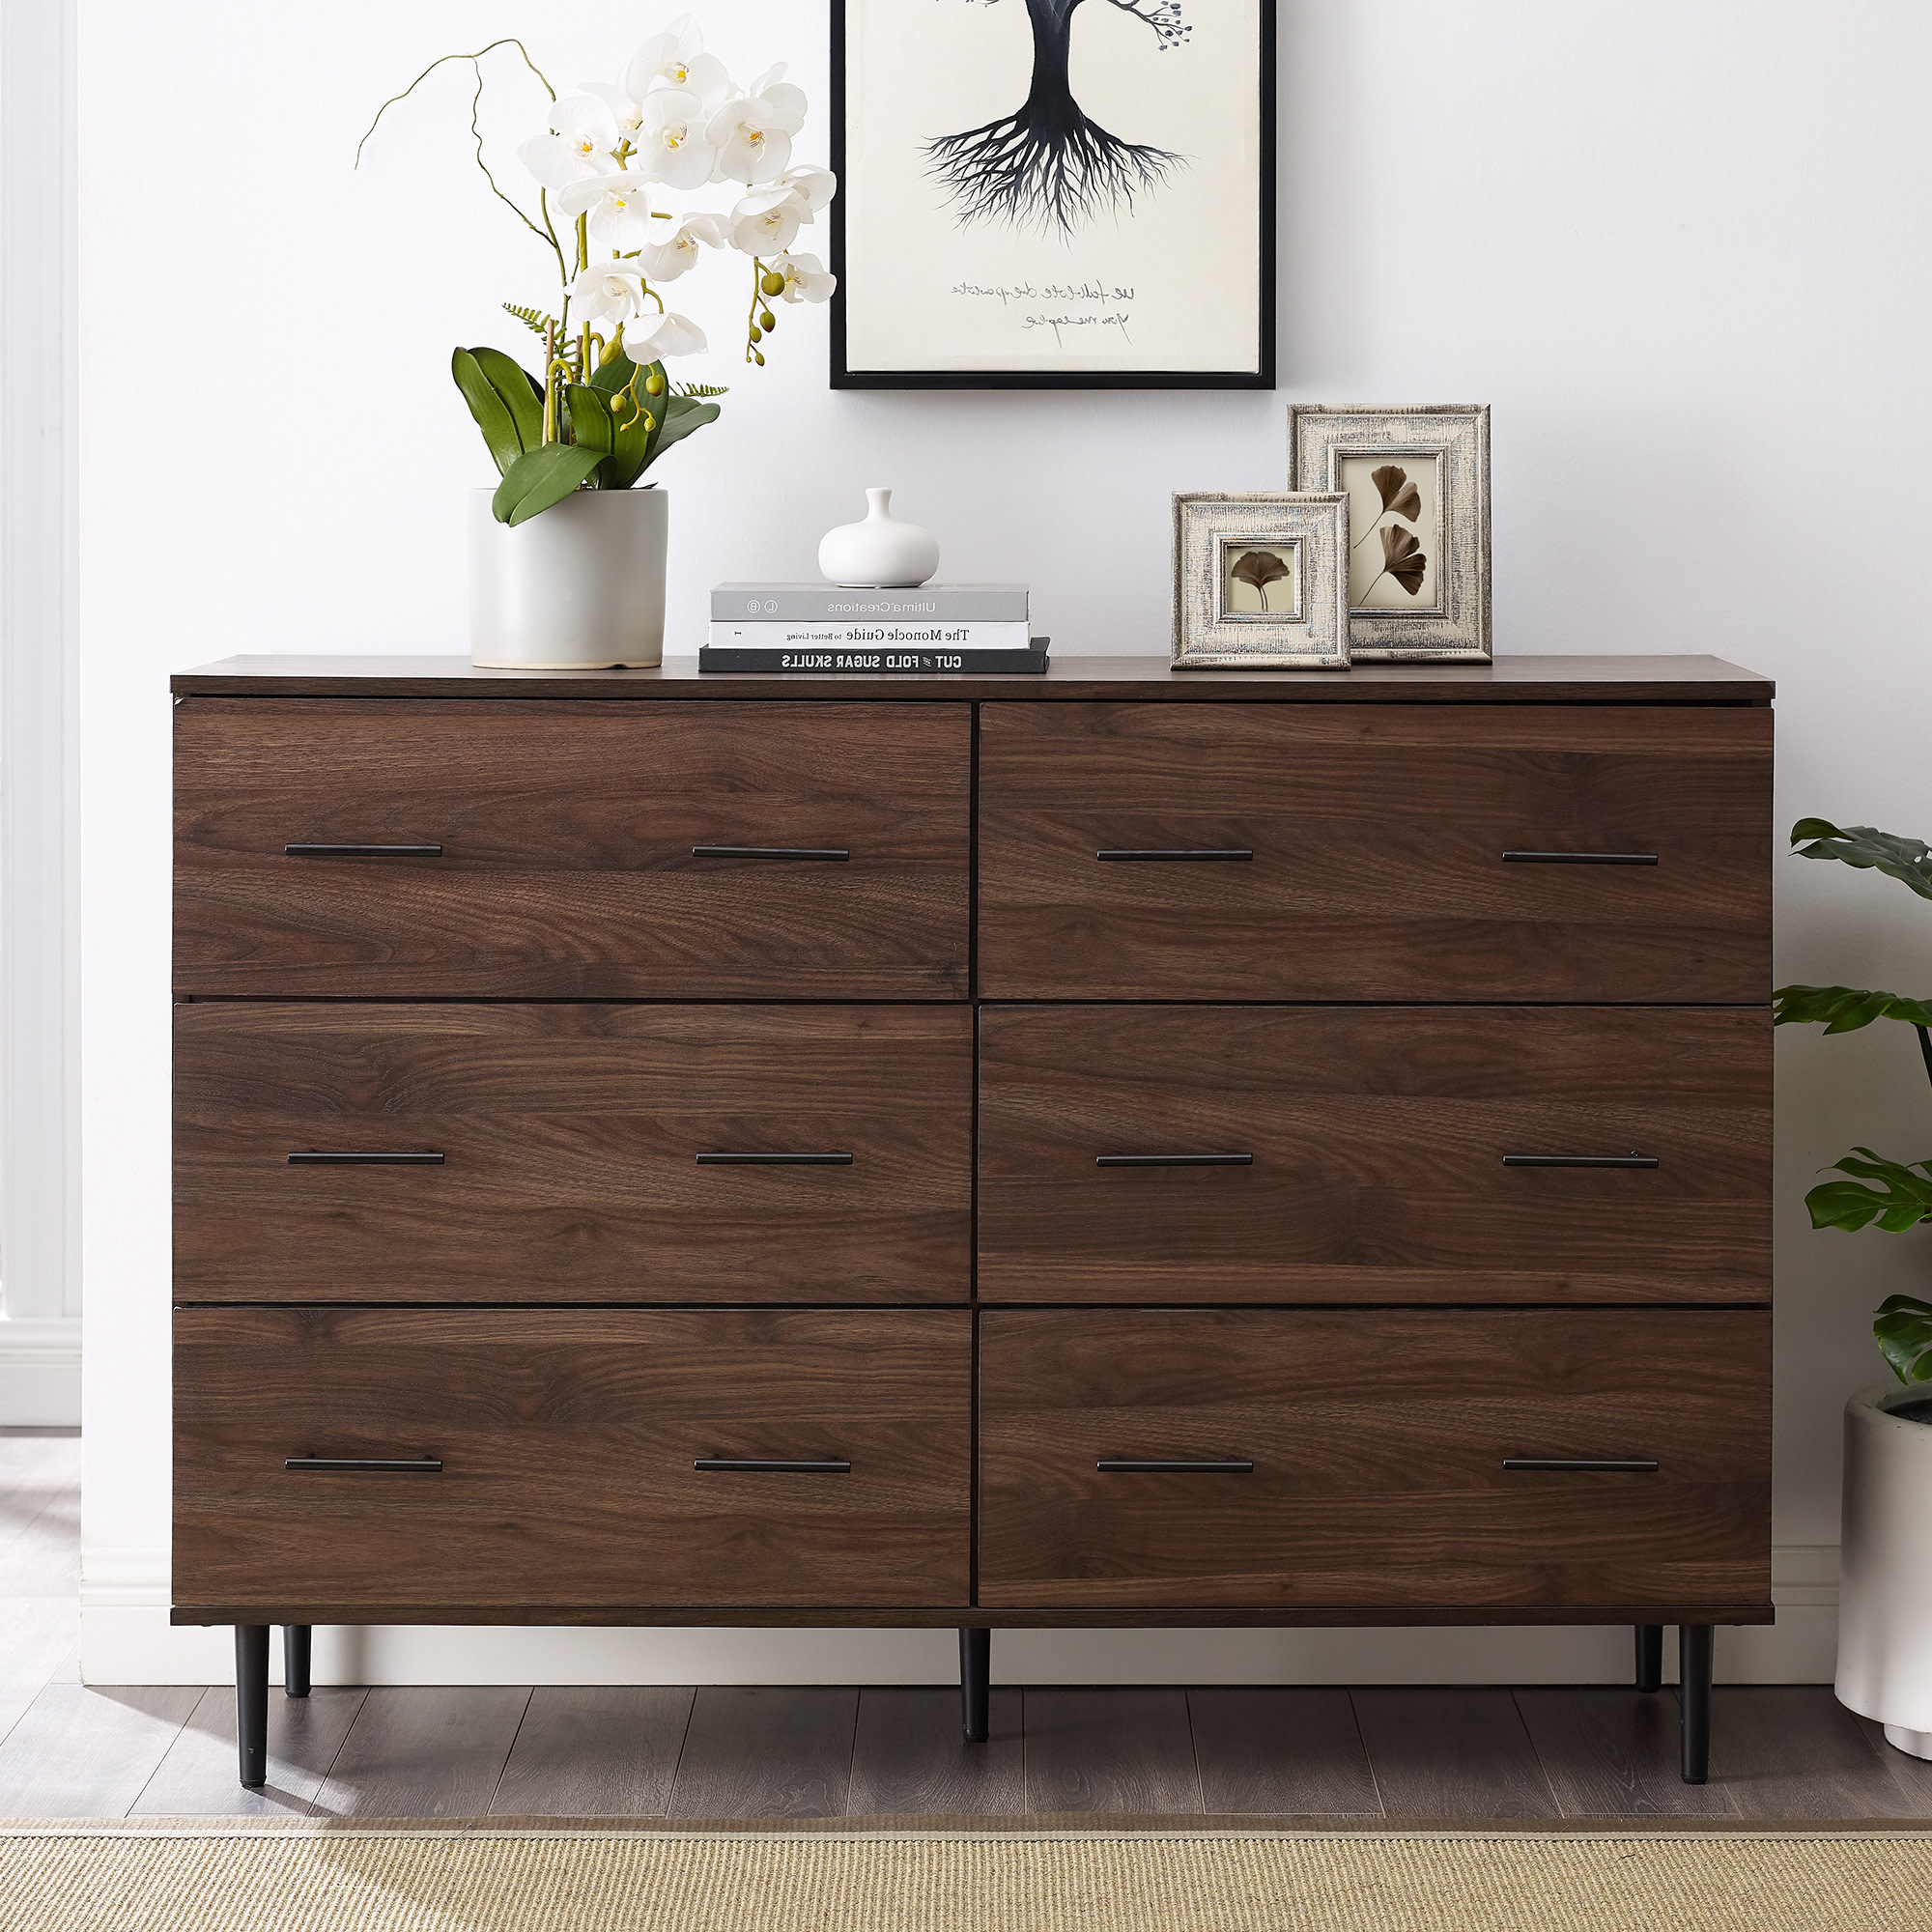 """Delacora We Bdu52sv6d 52""""w Farmhouse Modern 6 Drawer Throughout Well Liked Milena 52"""" Wide 2 Drawer Sideboards (View 4 of 20)"""